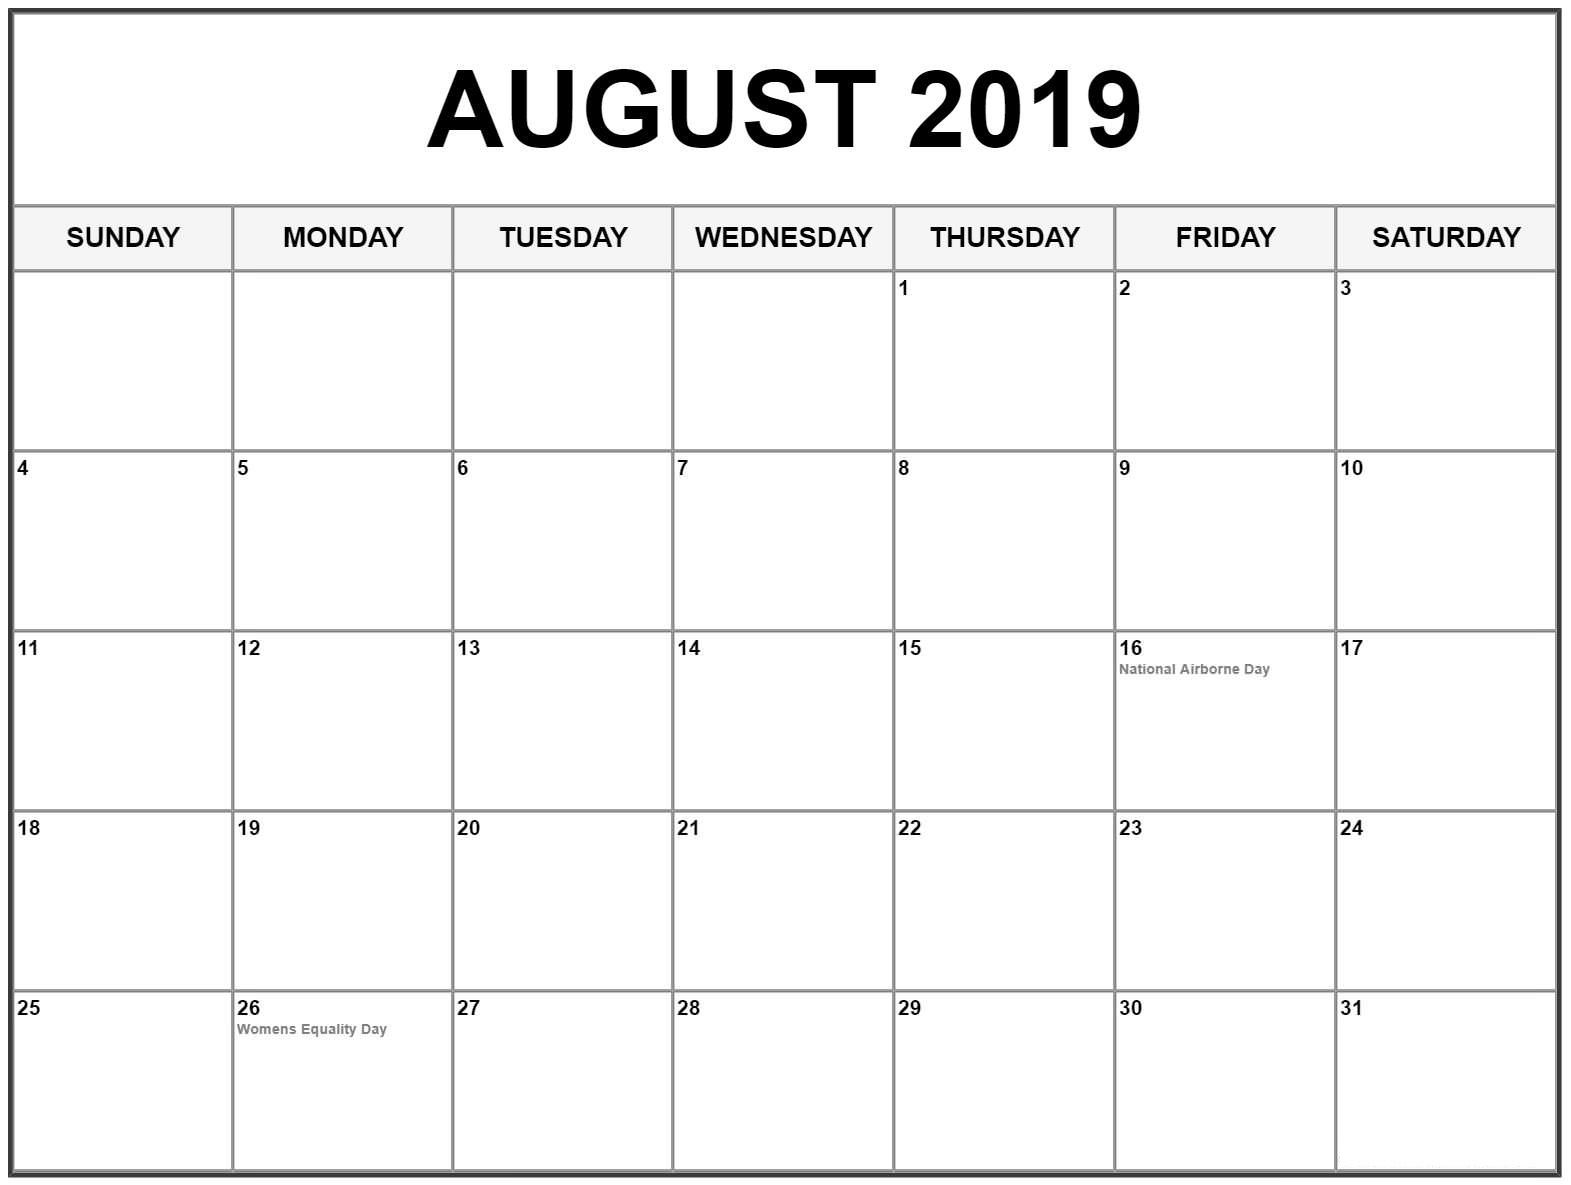 August 2019 Calendar With Holidays Usa, Canada | August 2019 intended for Blank Calender Of August